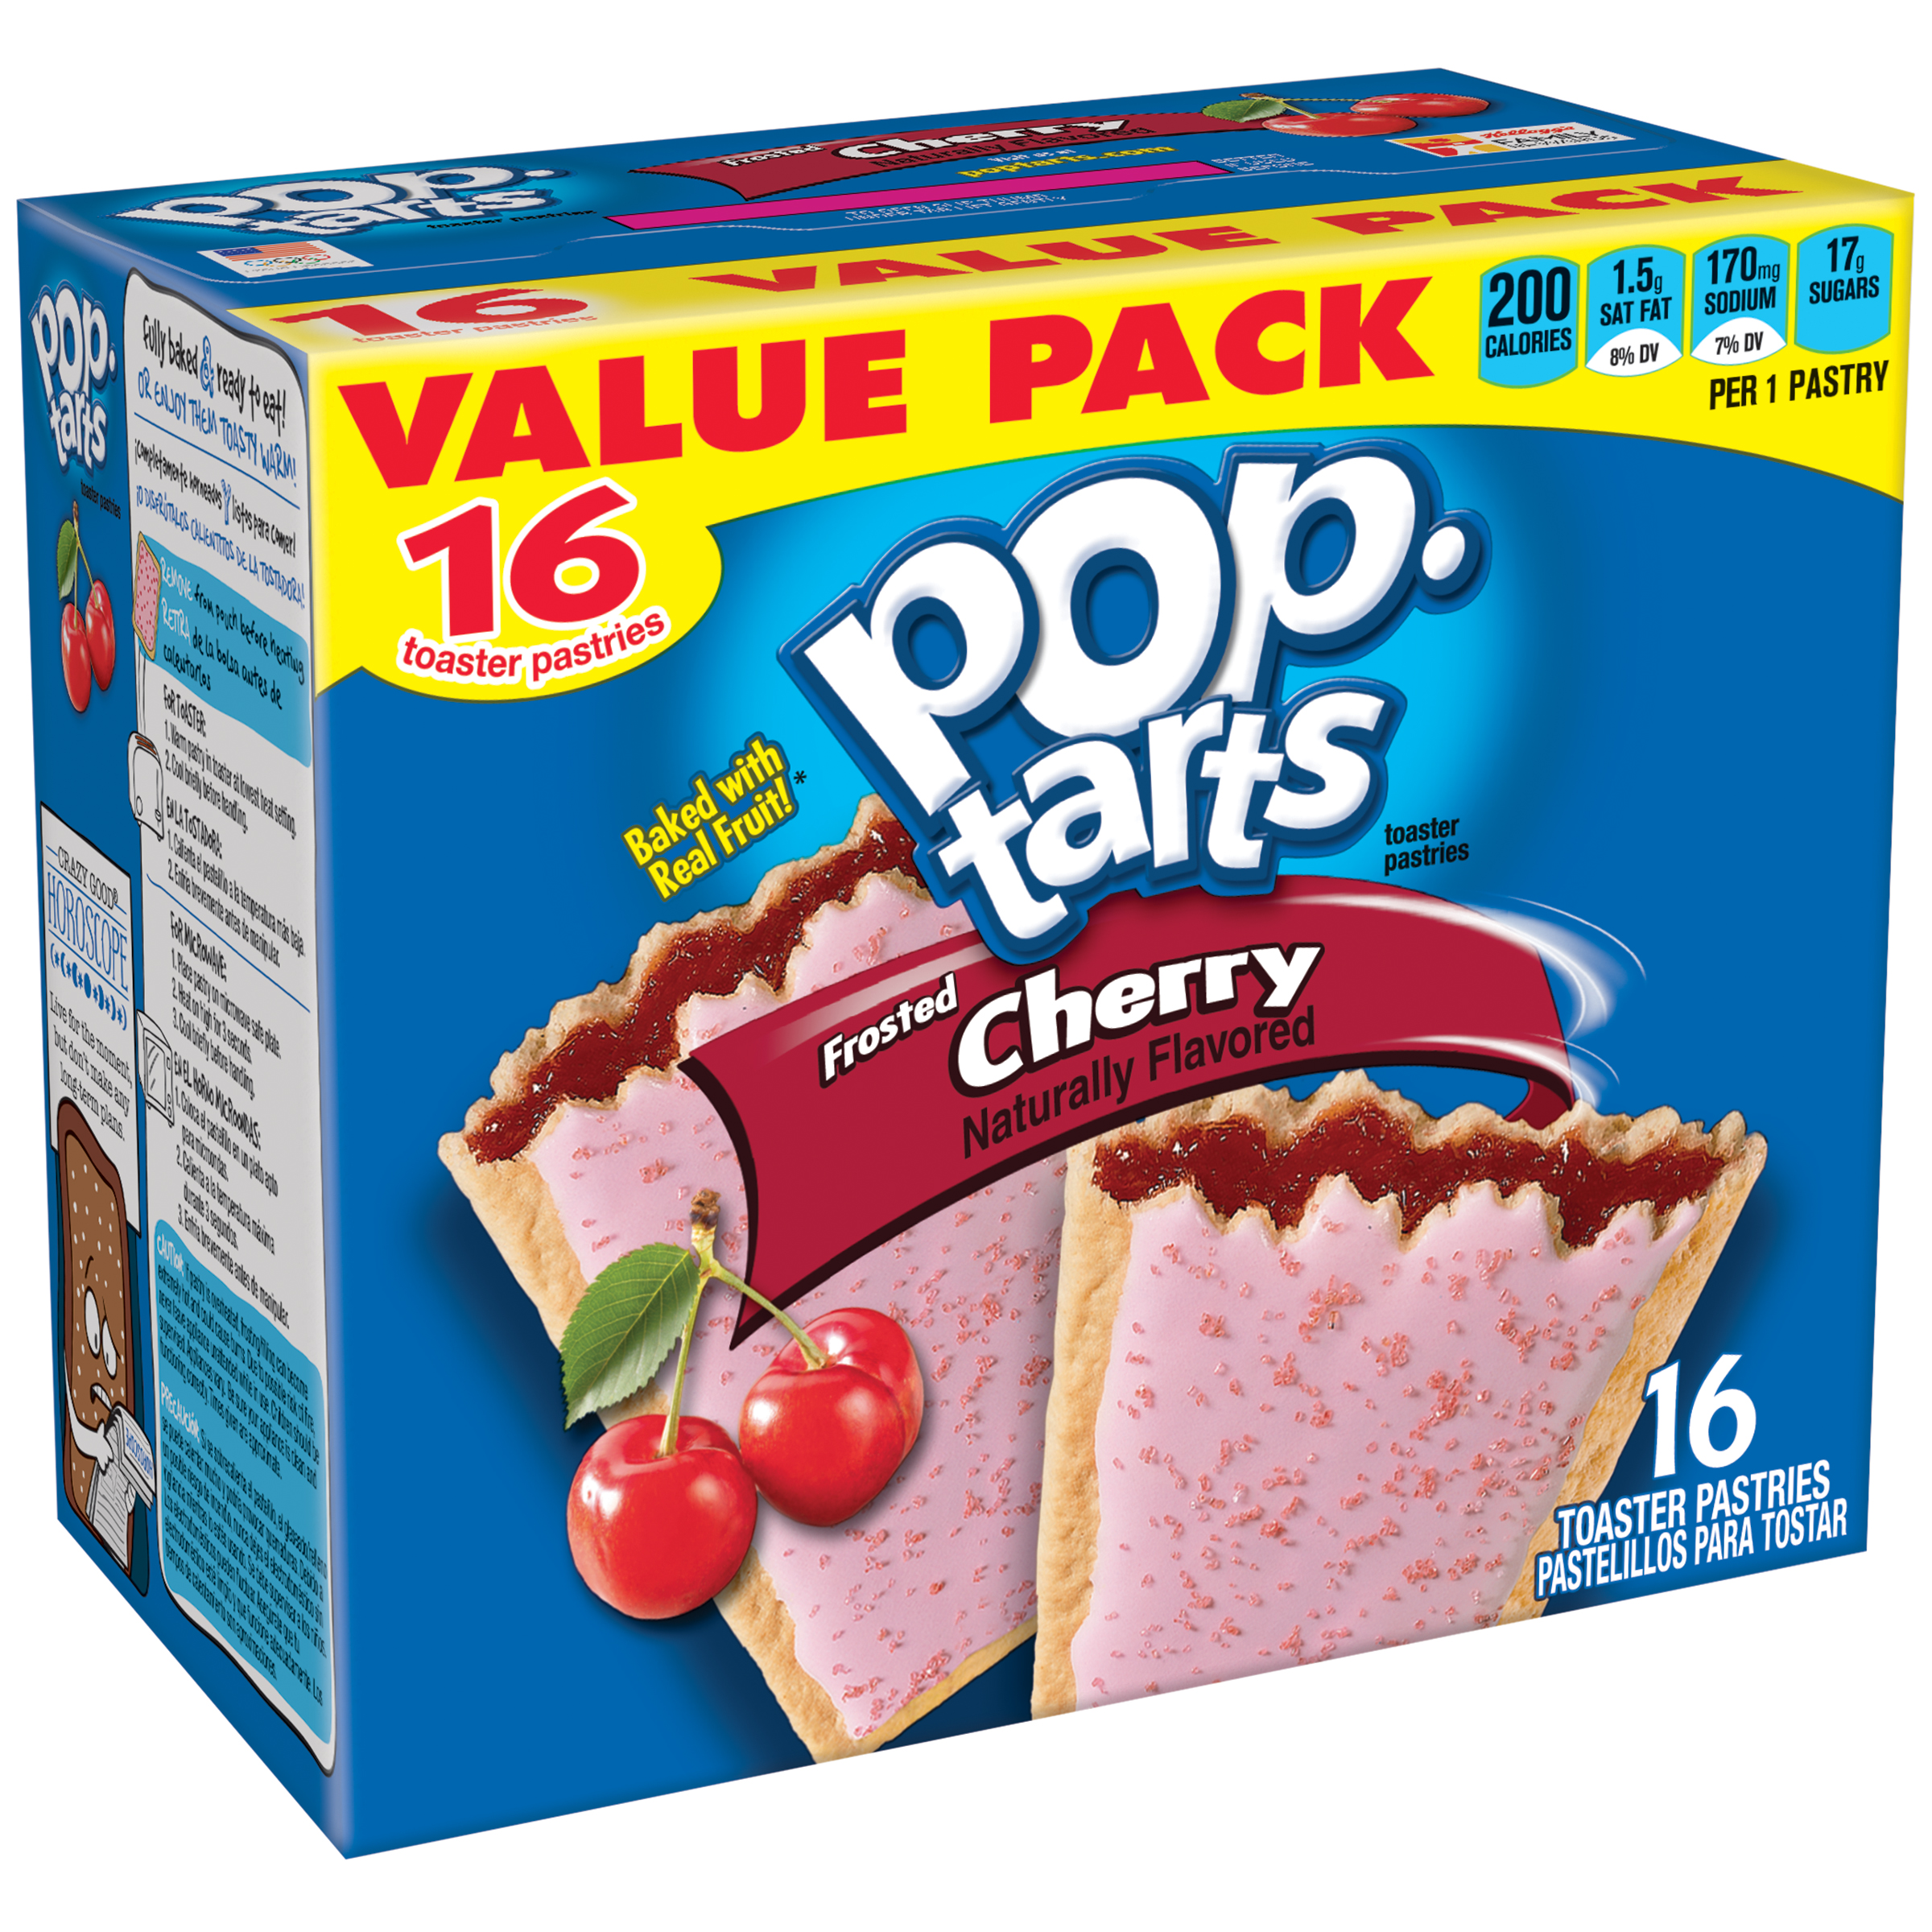 Pop-Tarts Frosted Cherry, 16 Toaster Pastries